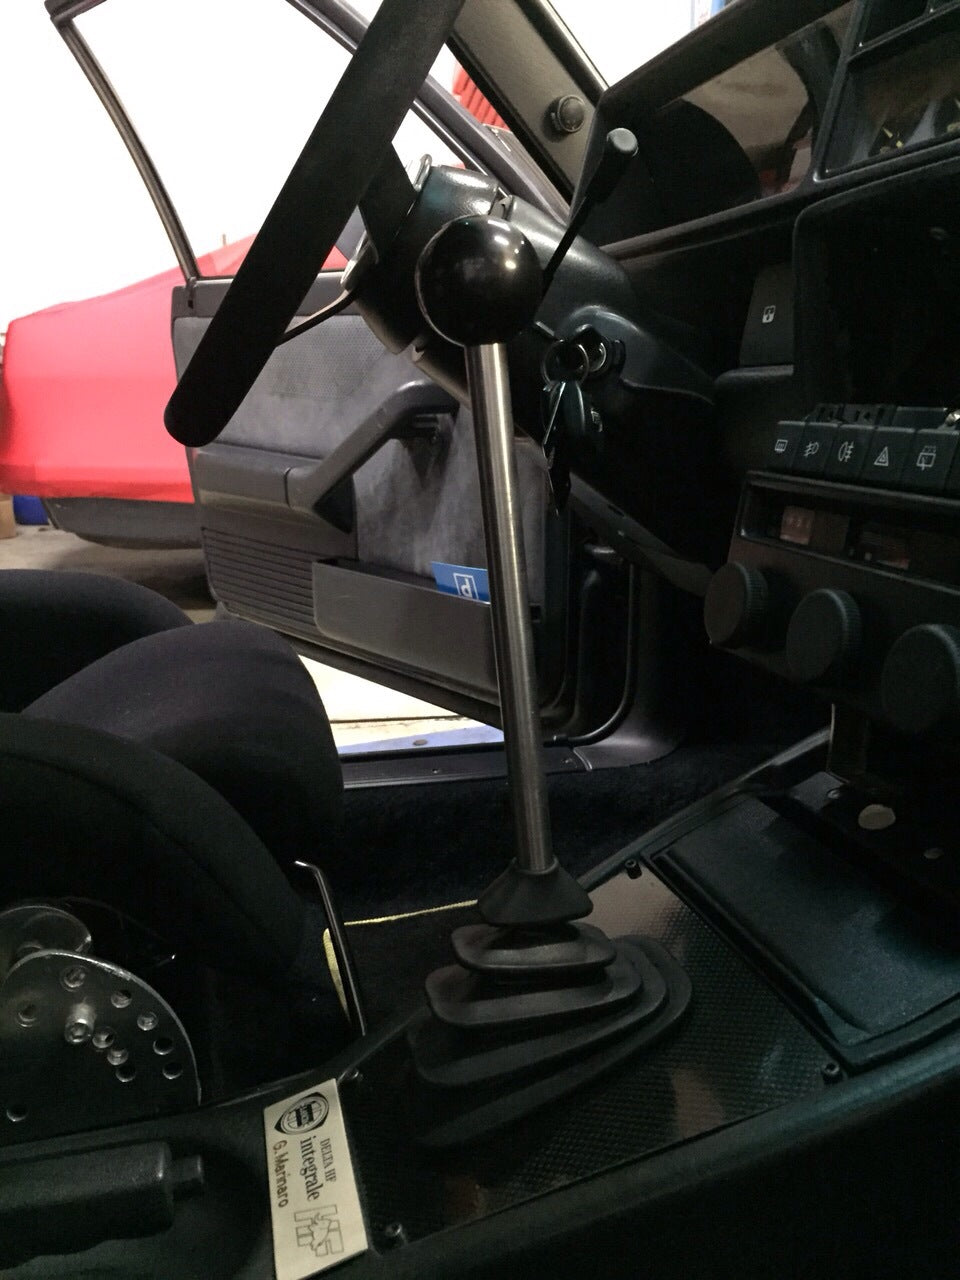 Lancia Delta HF integrale Short Shifter Kit installed with carbon plate